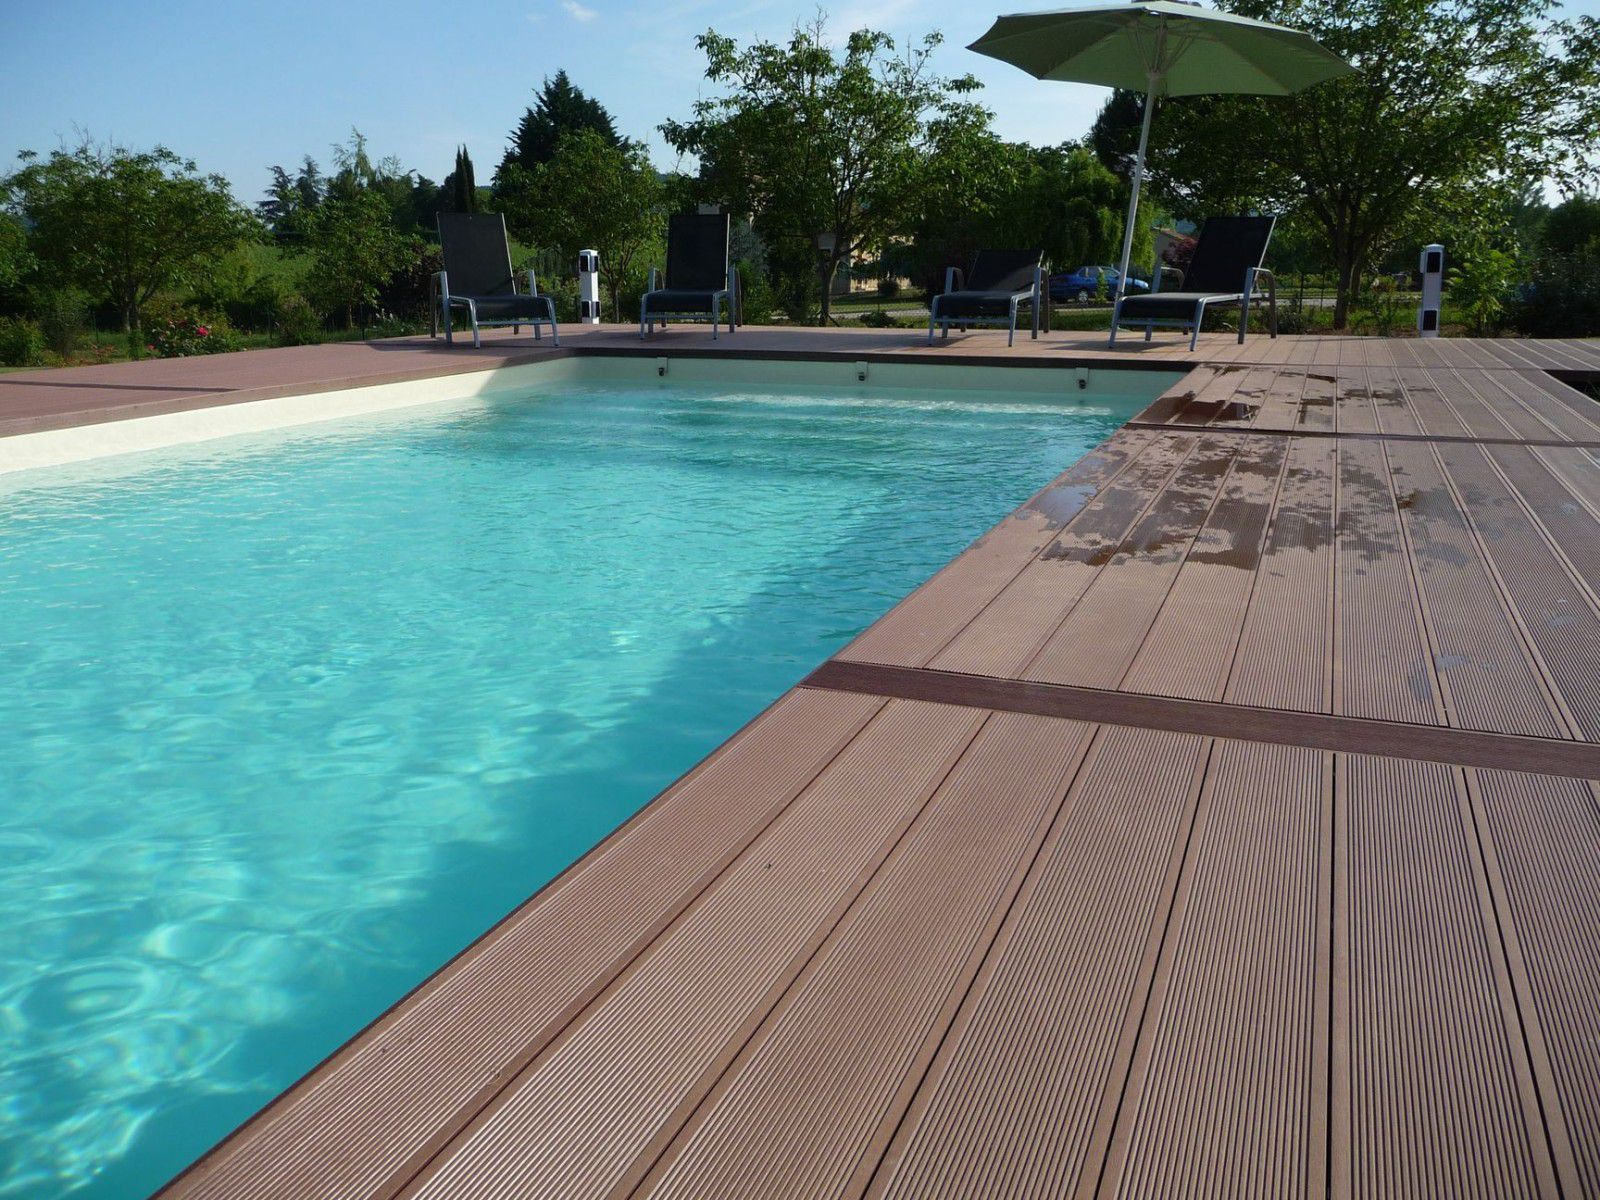 Piscine en blocs poly terrasse en bois composite for Piscine bois composite